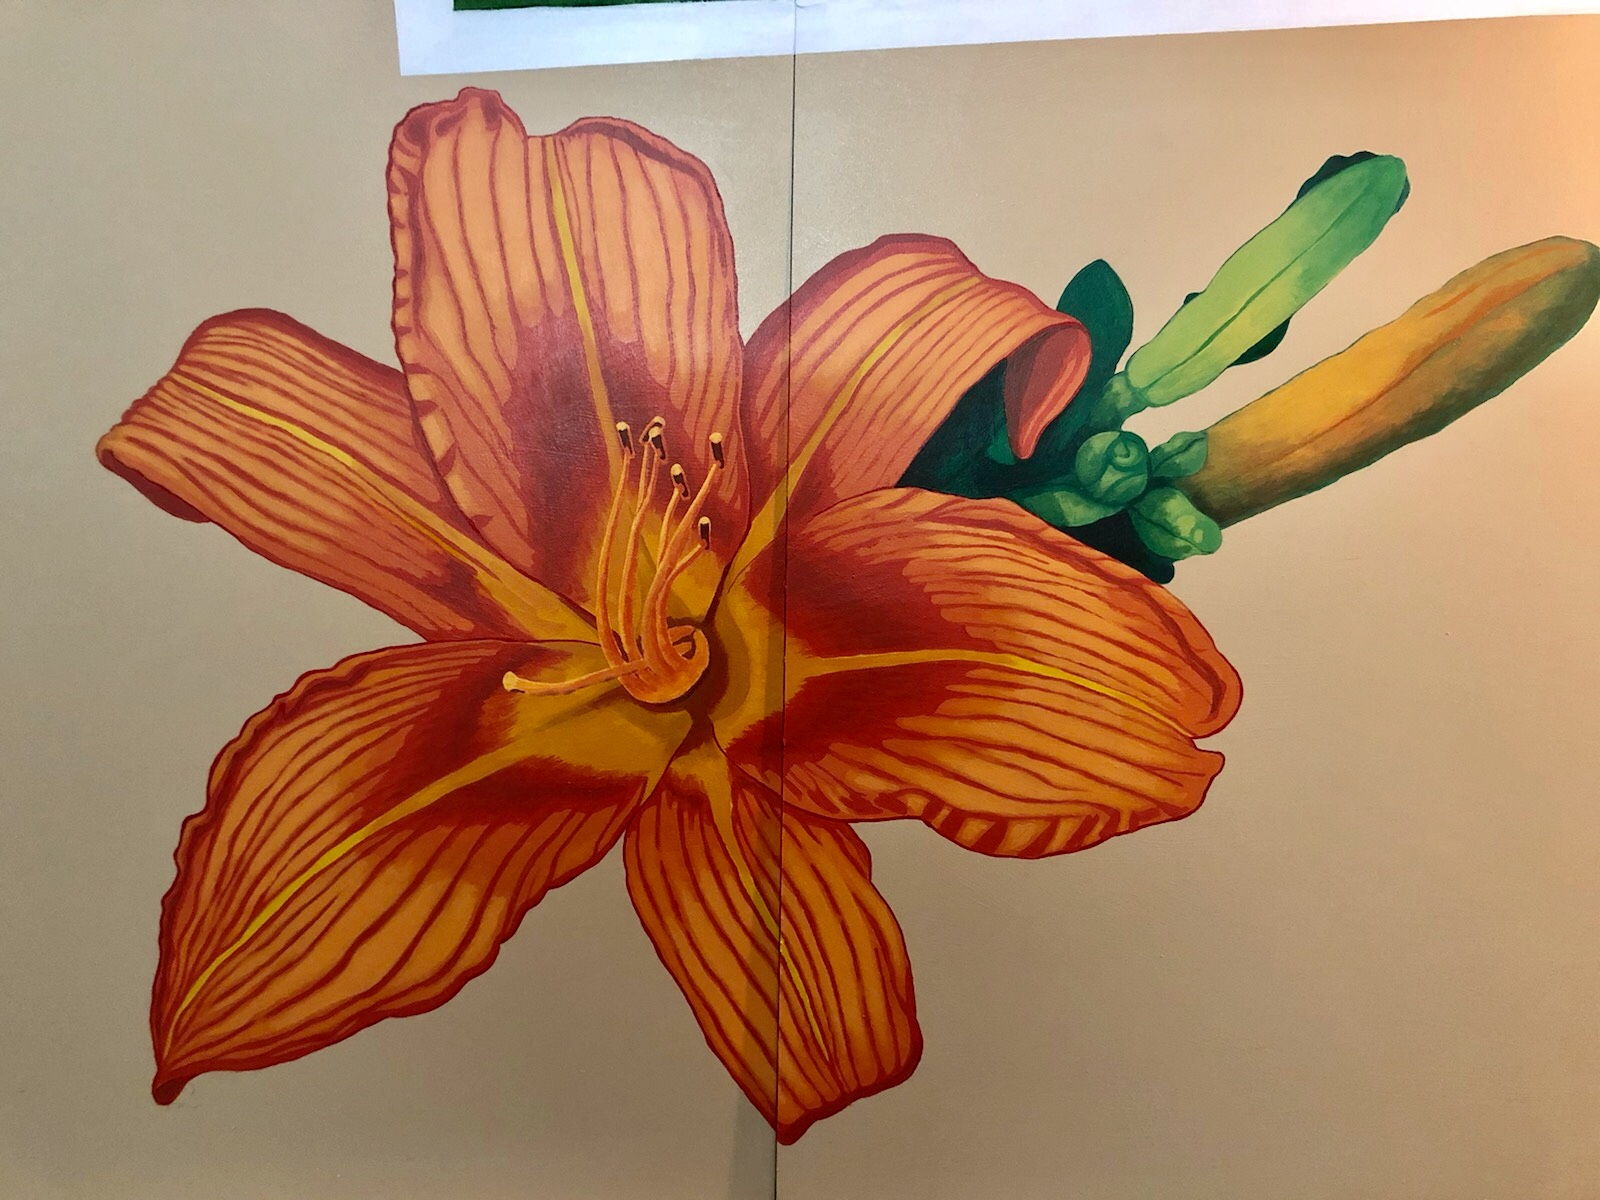 Day lilly, work in progress for a 36ft x 8ft mural installation